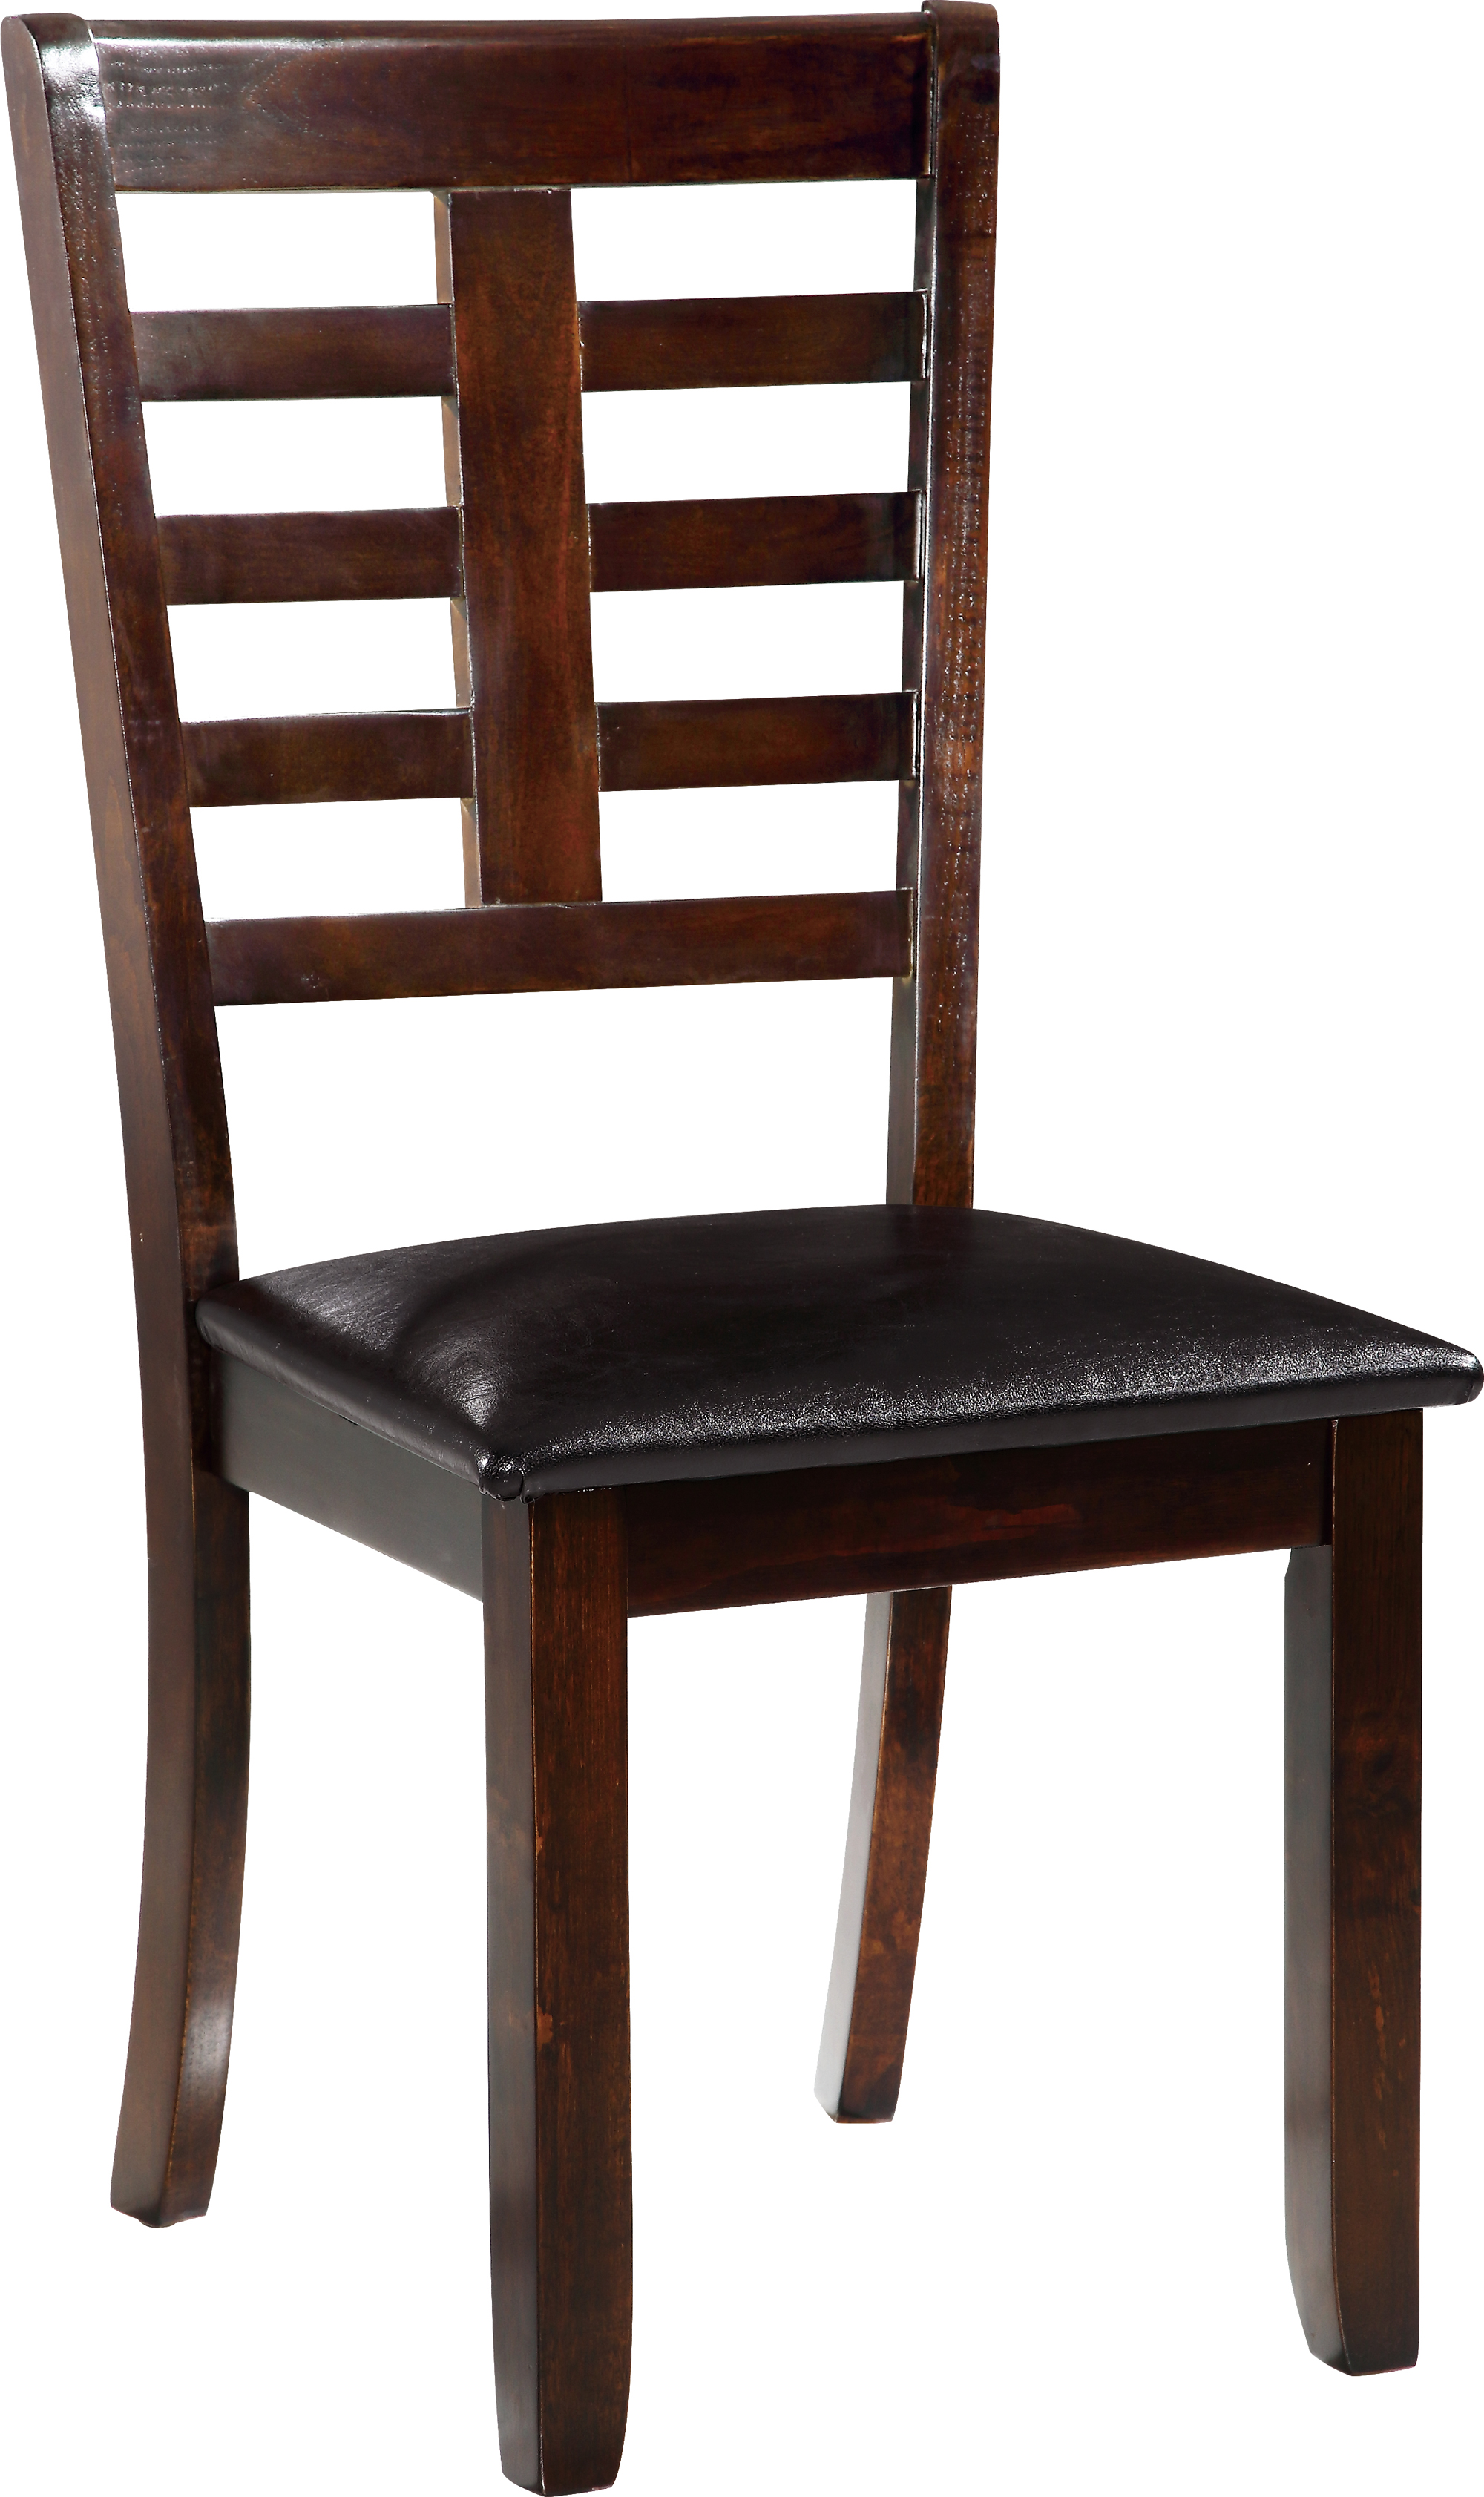 Dining Chair D3743DC Set of 2 Black PUBrown Leg by  : D3743DC from futonland.com size 2000 x 3365 jpeg 1818kB